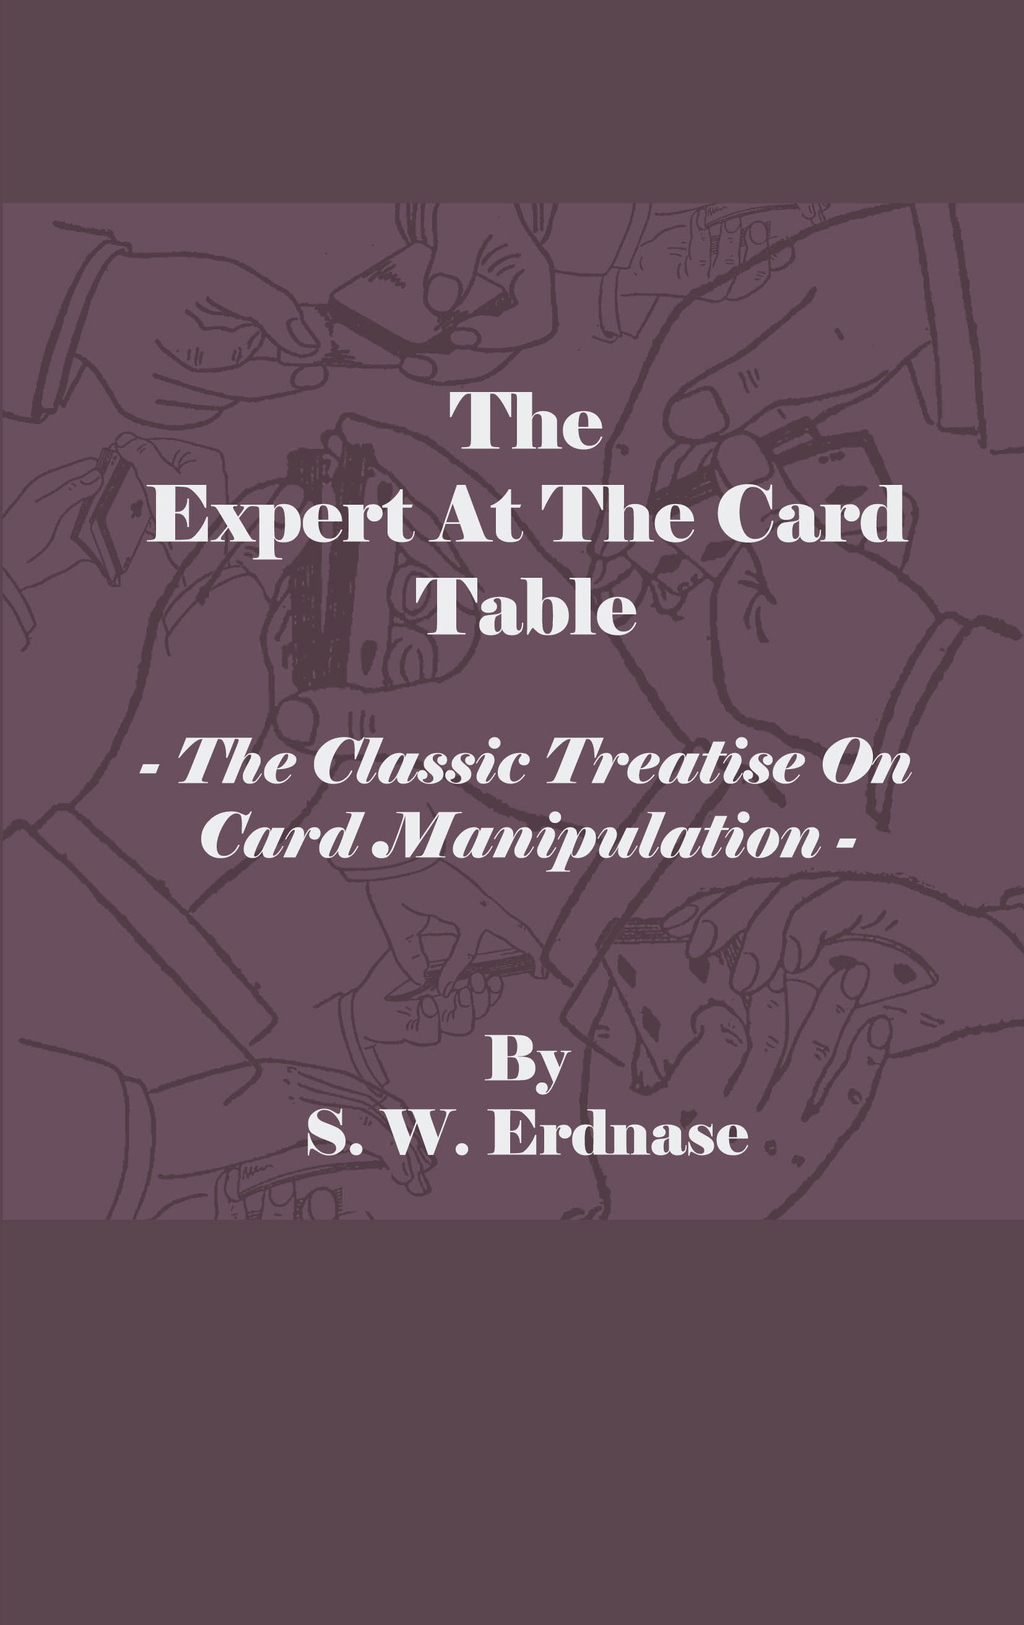 The Expert At The Card Table - The Classic Treatise On Card Manipulation By: S. W. Erdnase